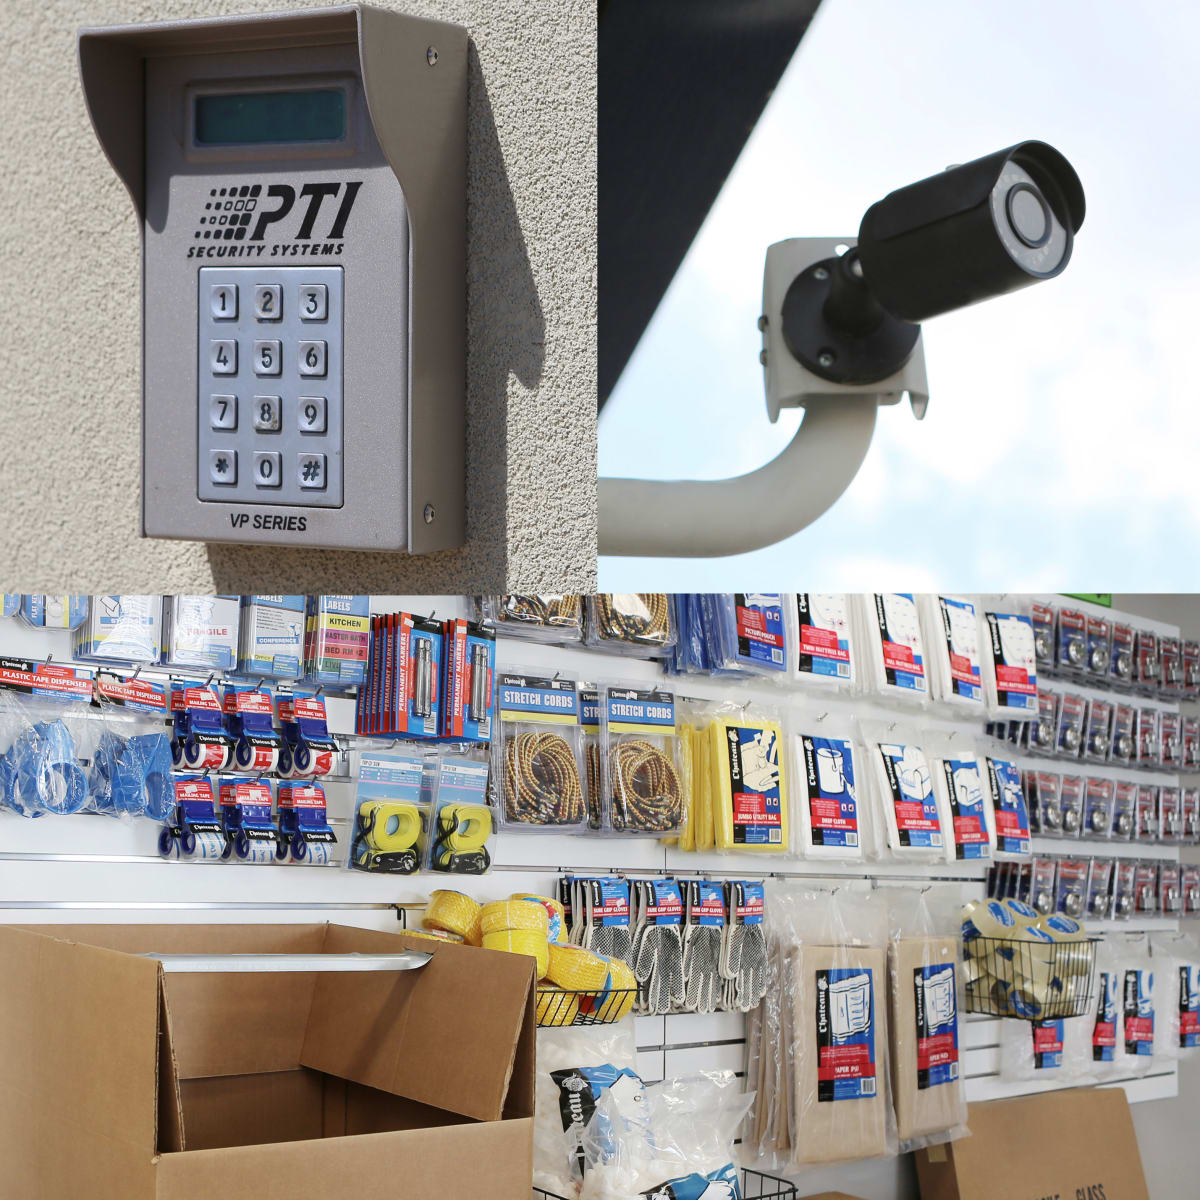 We provide 24 hour security monitoring and sell various moving and packing supplies at Midgard Self Storage in Murfreesboro, Tennessee